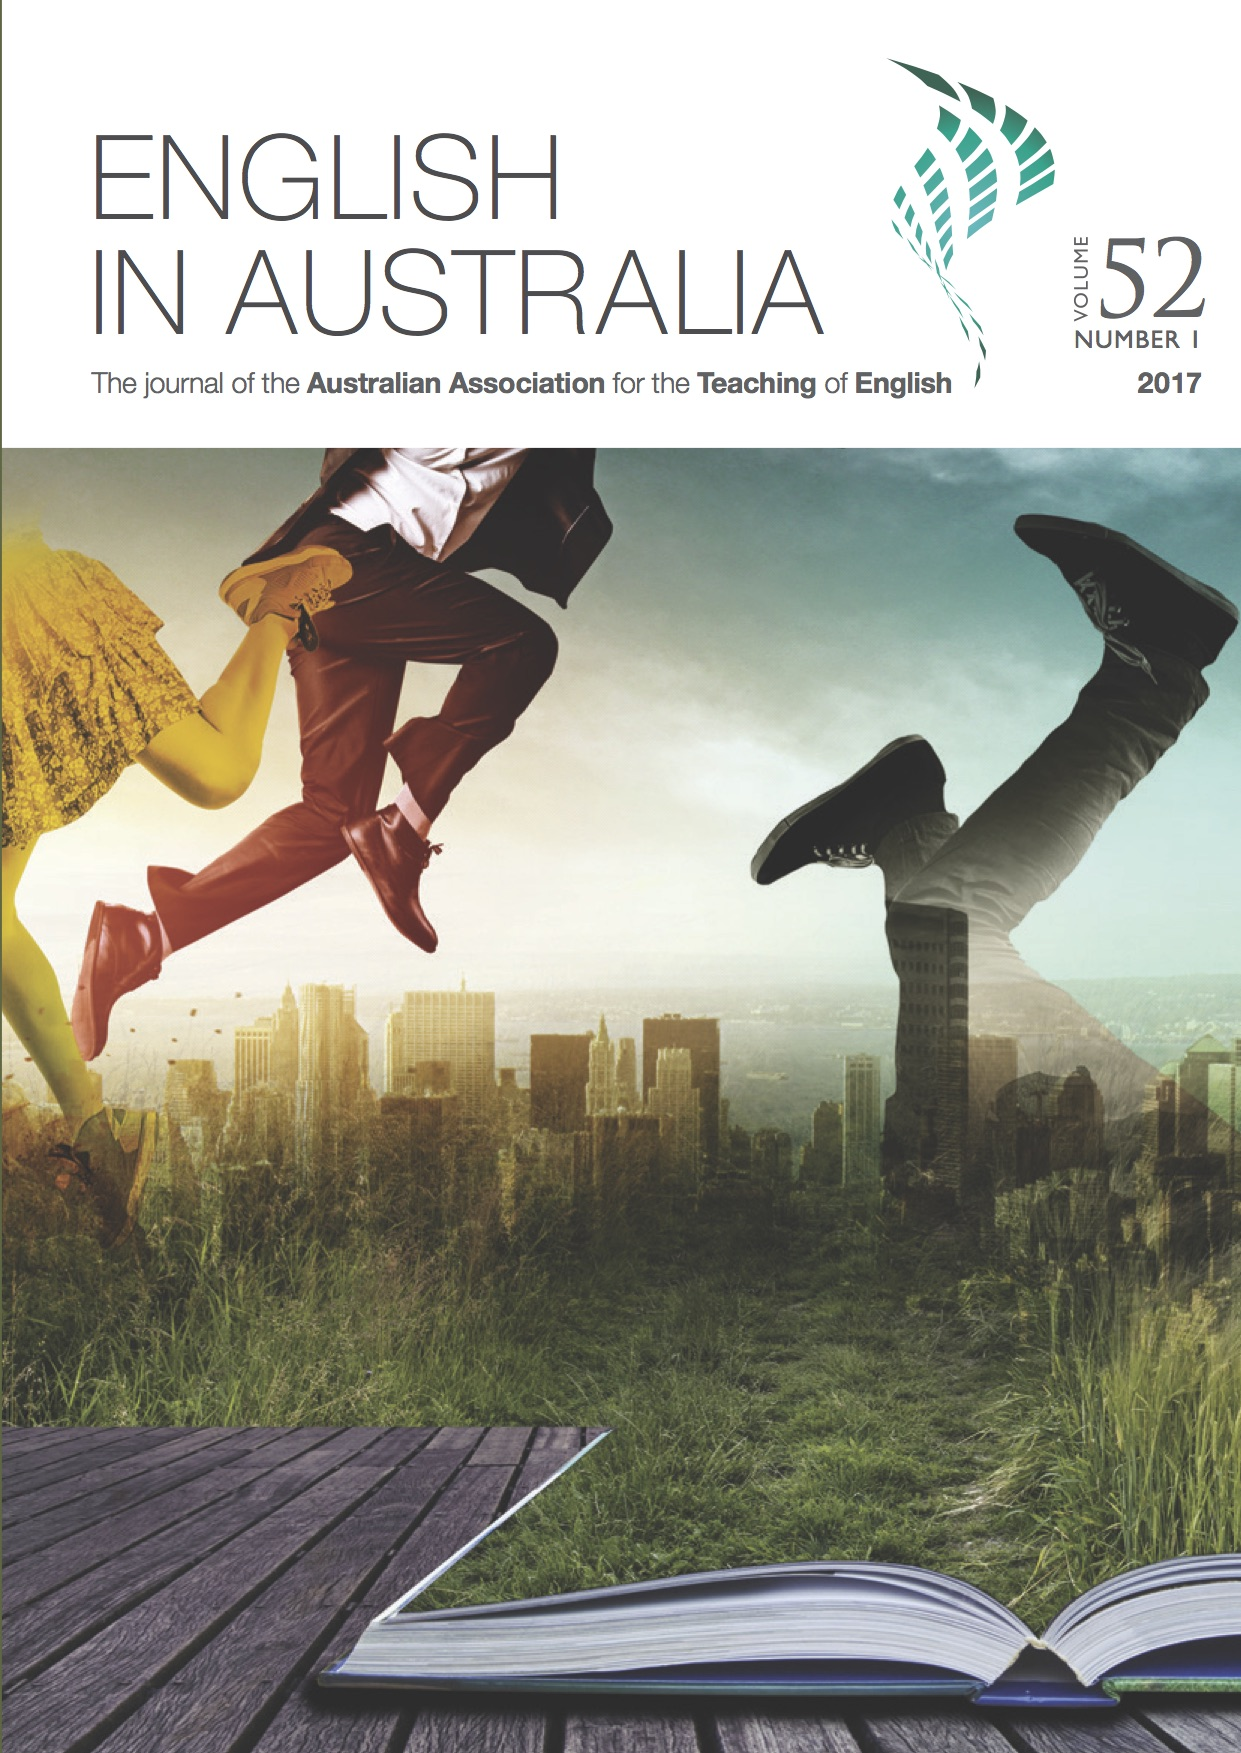 English in Australia Vol 52 No 1 2017